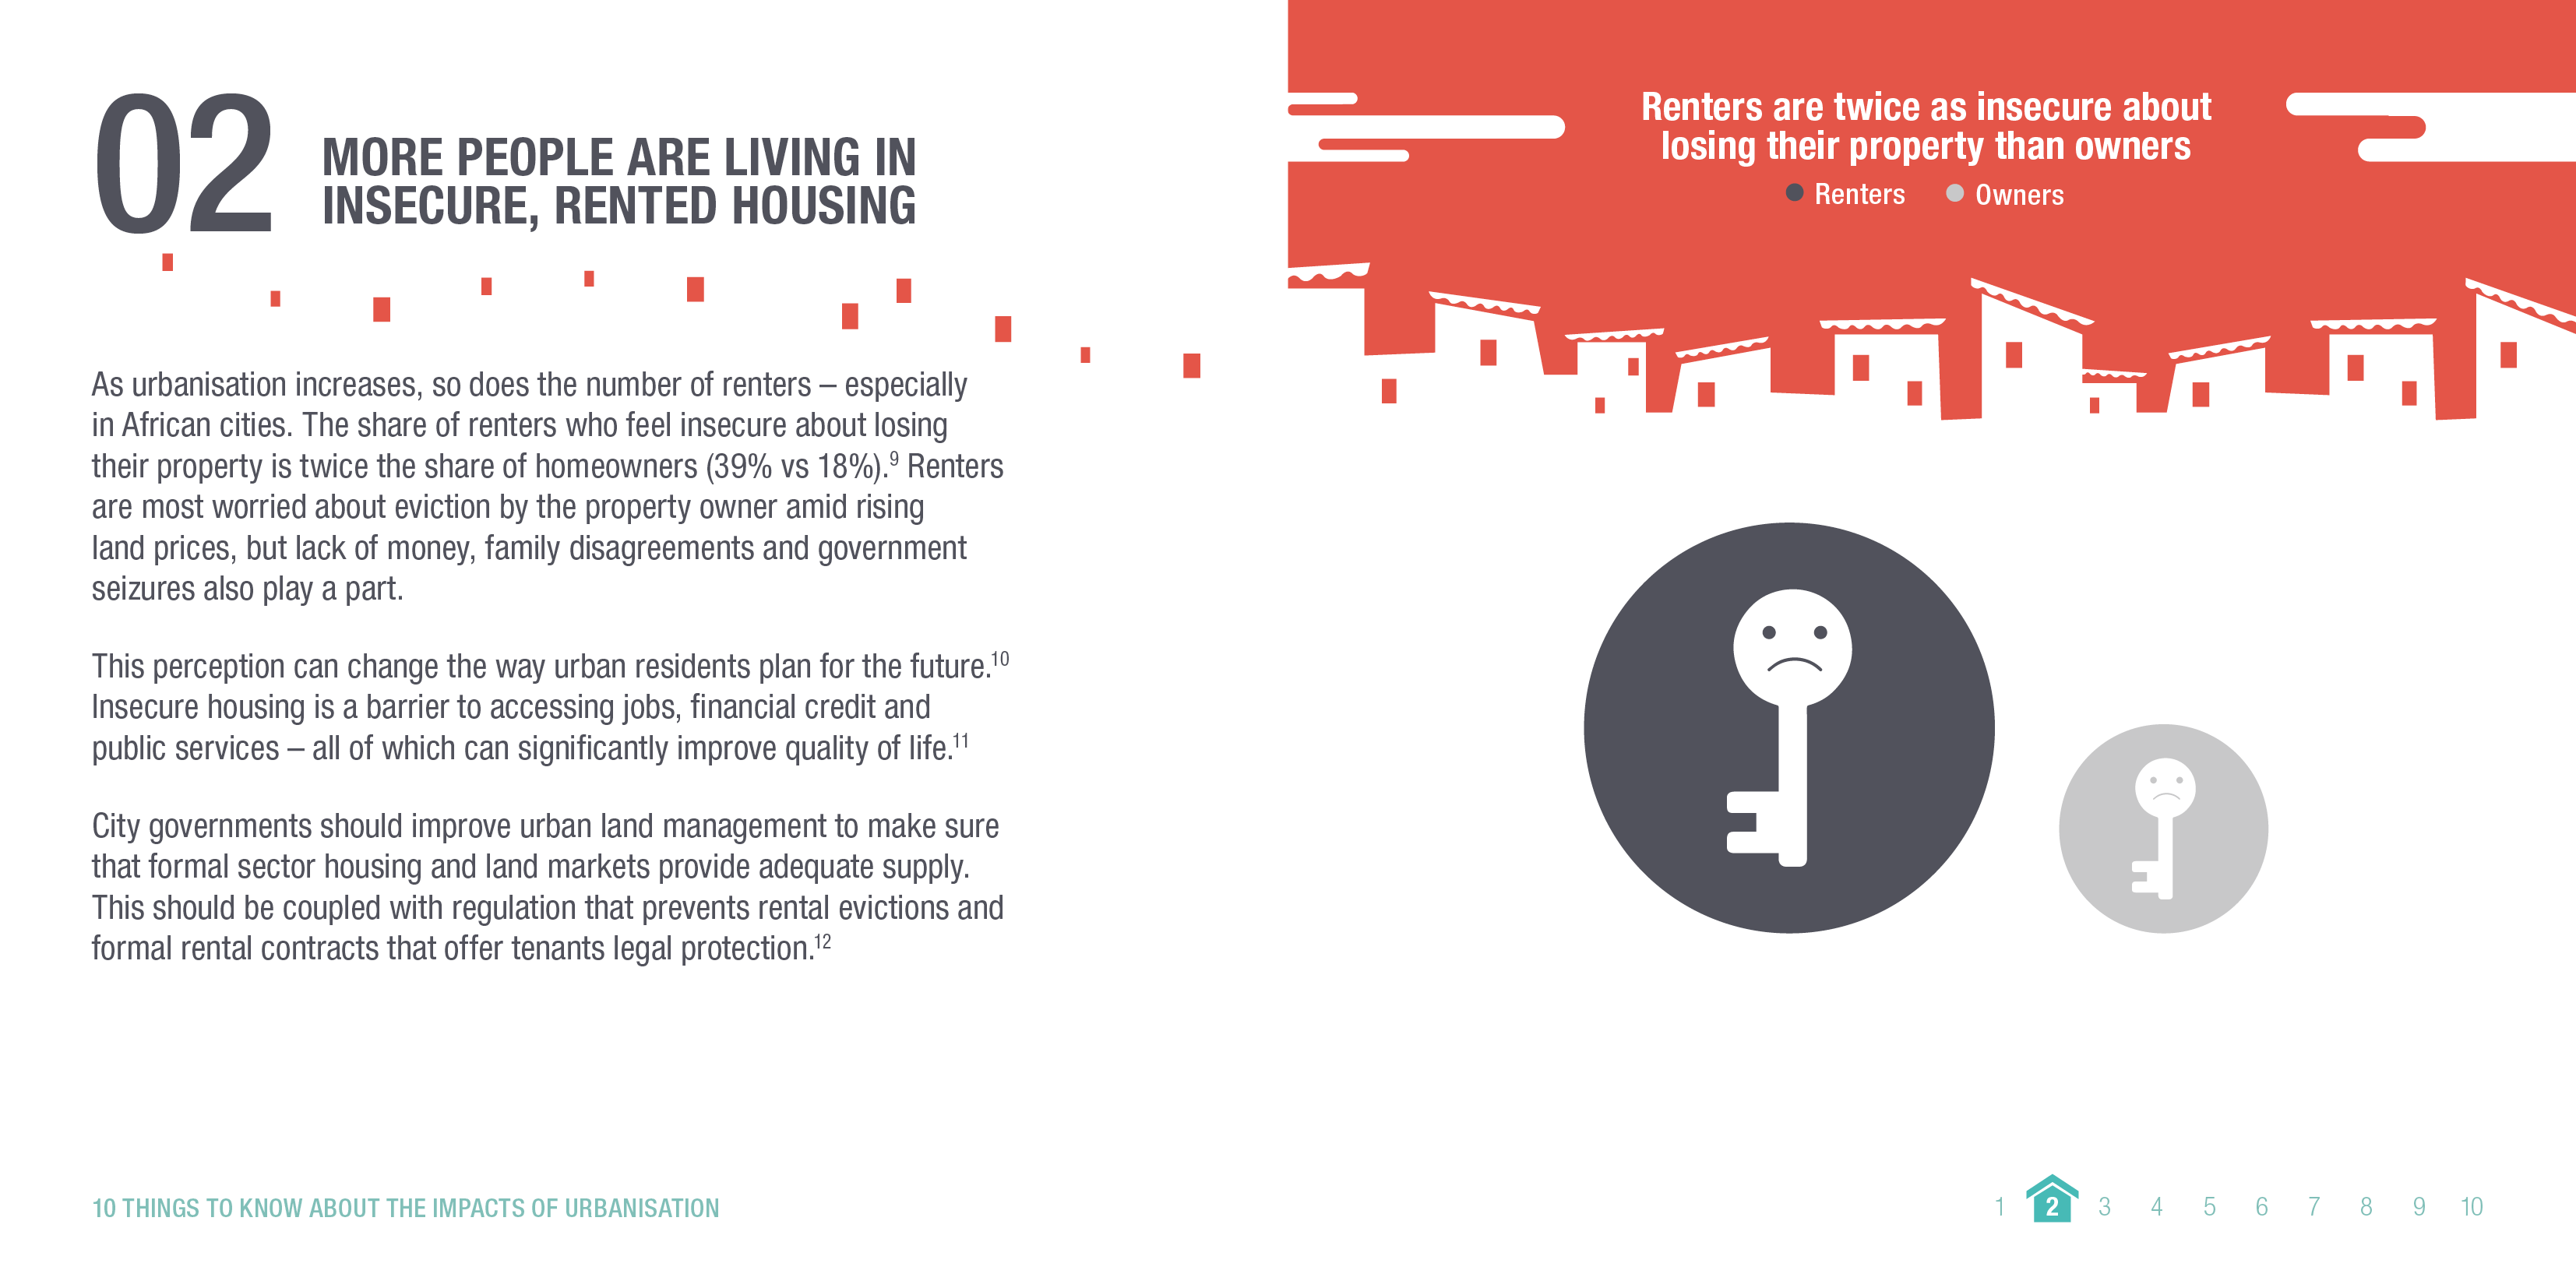 Infographic: More people are living in insecure, rented housing. © ODI 2018.